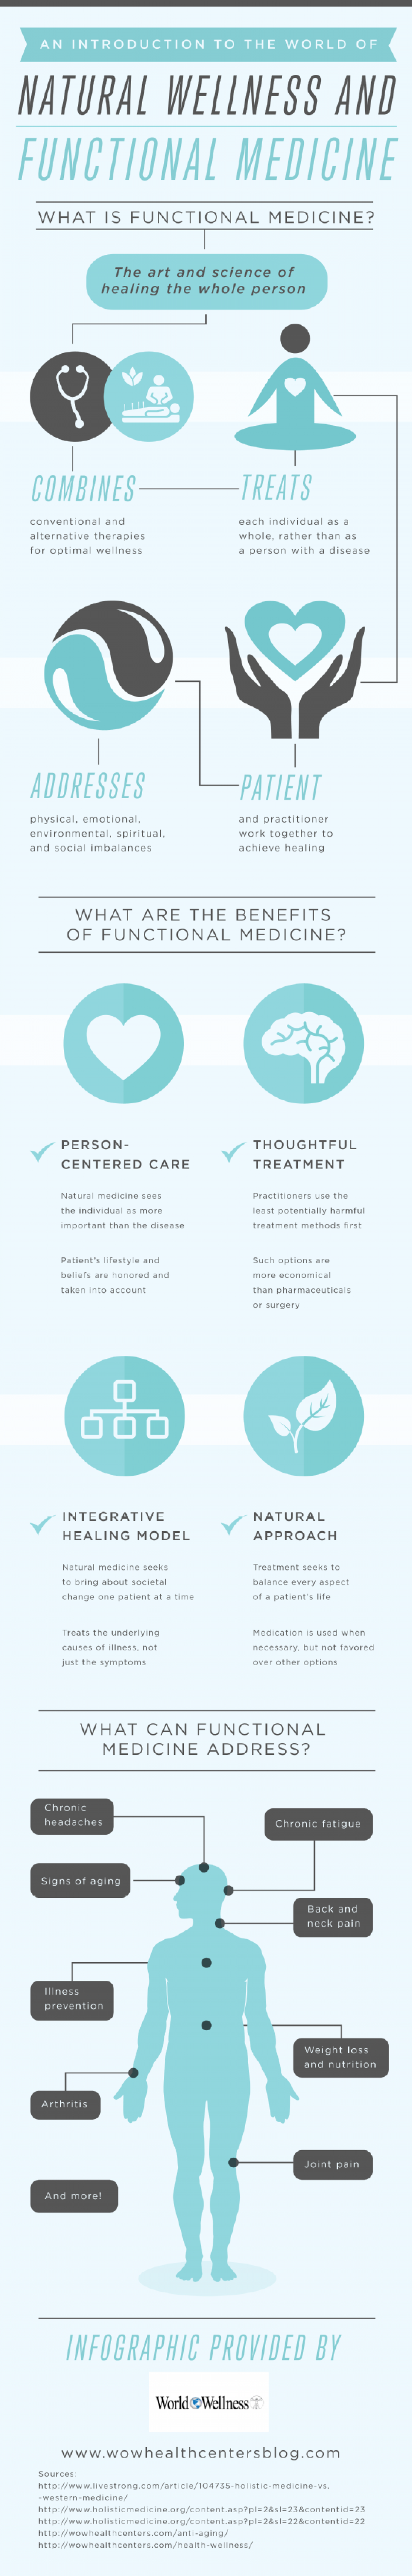 World of Wellness Infographic